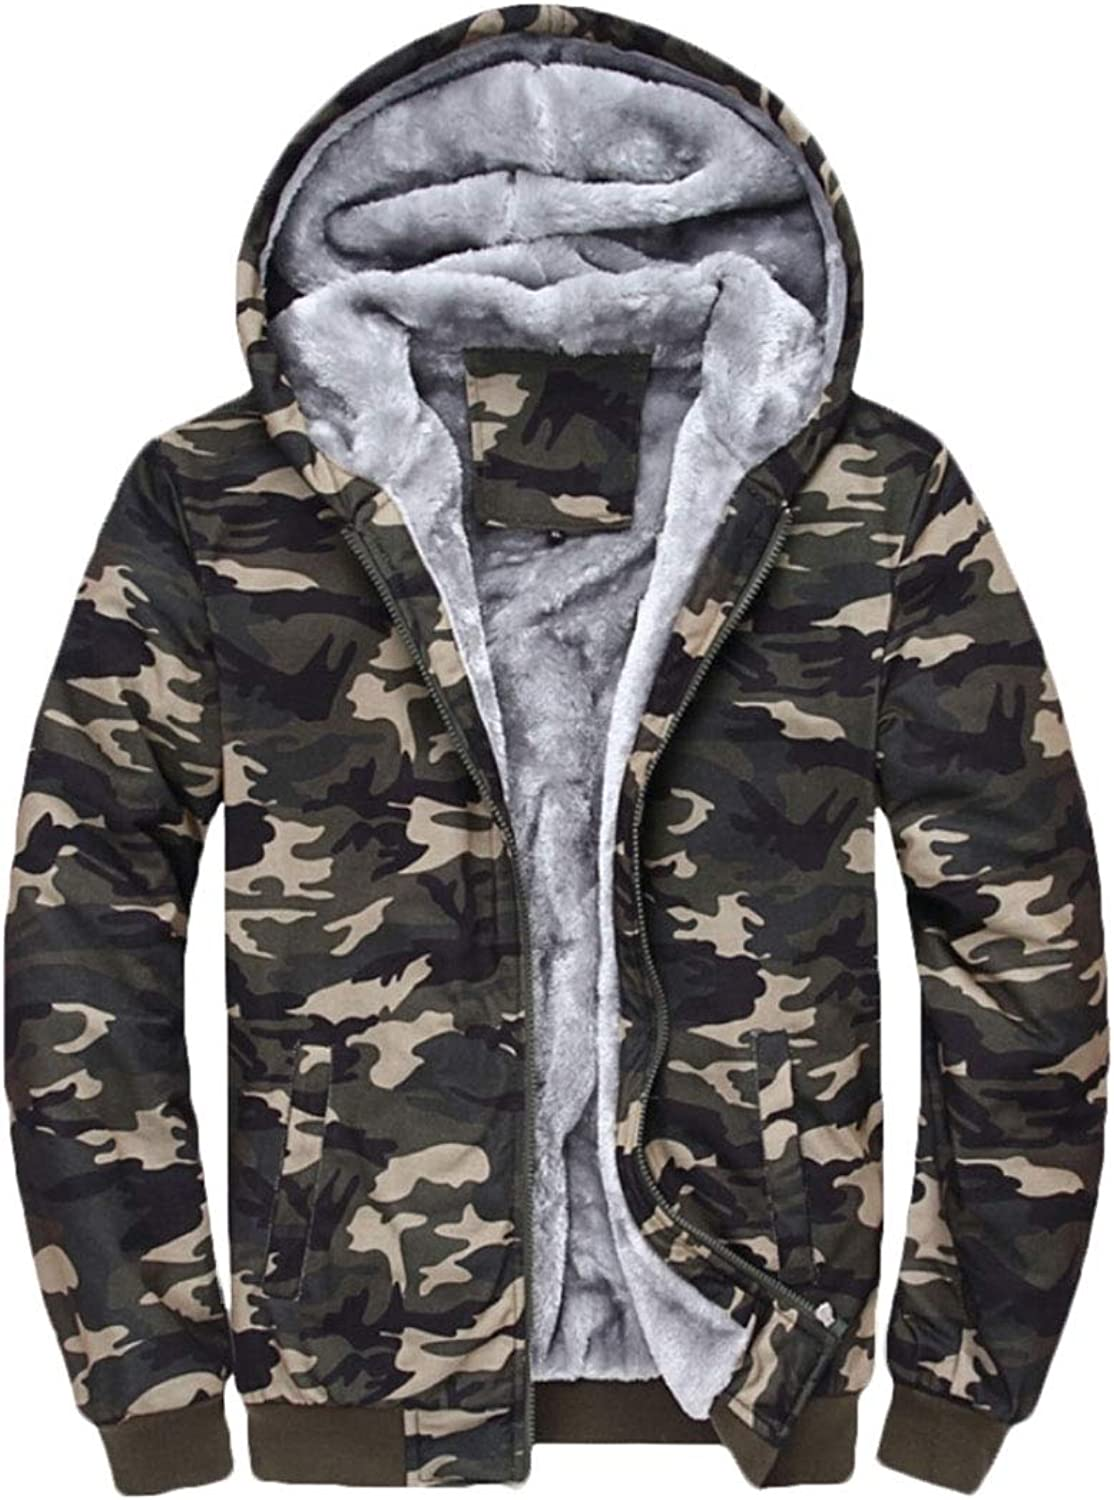 Jxfd Men's Winter Hooded Half Zip Sports Coats Fleece Camouflage Printed Coat